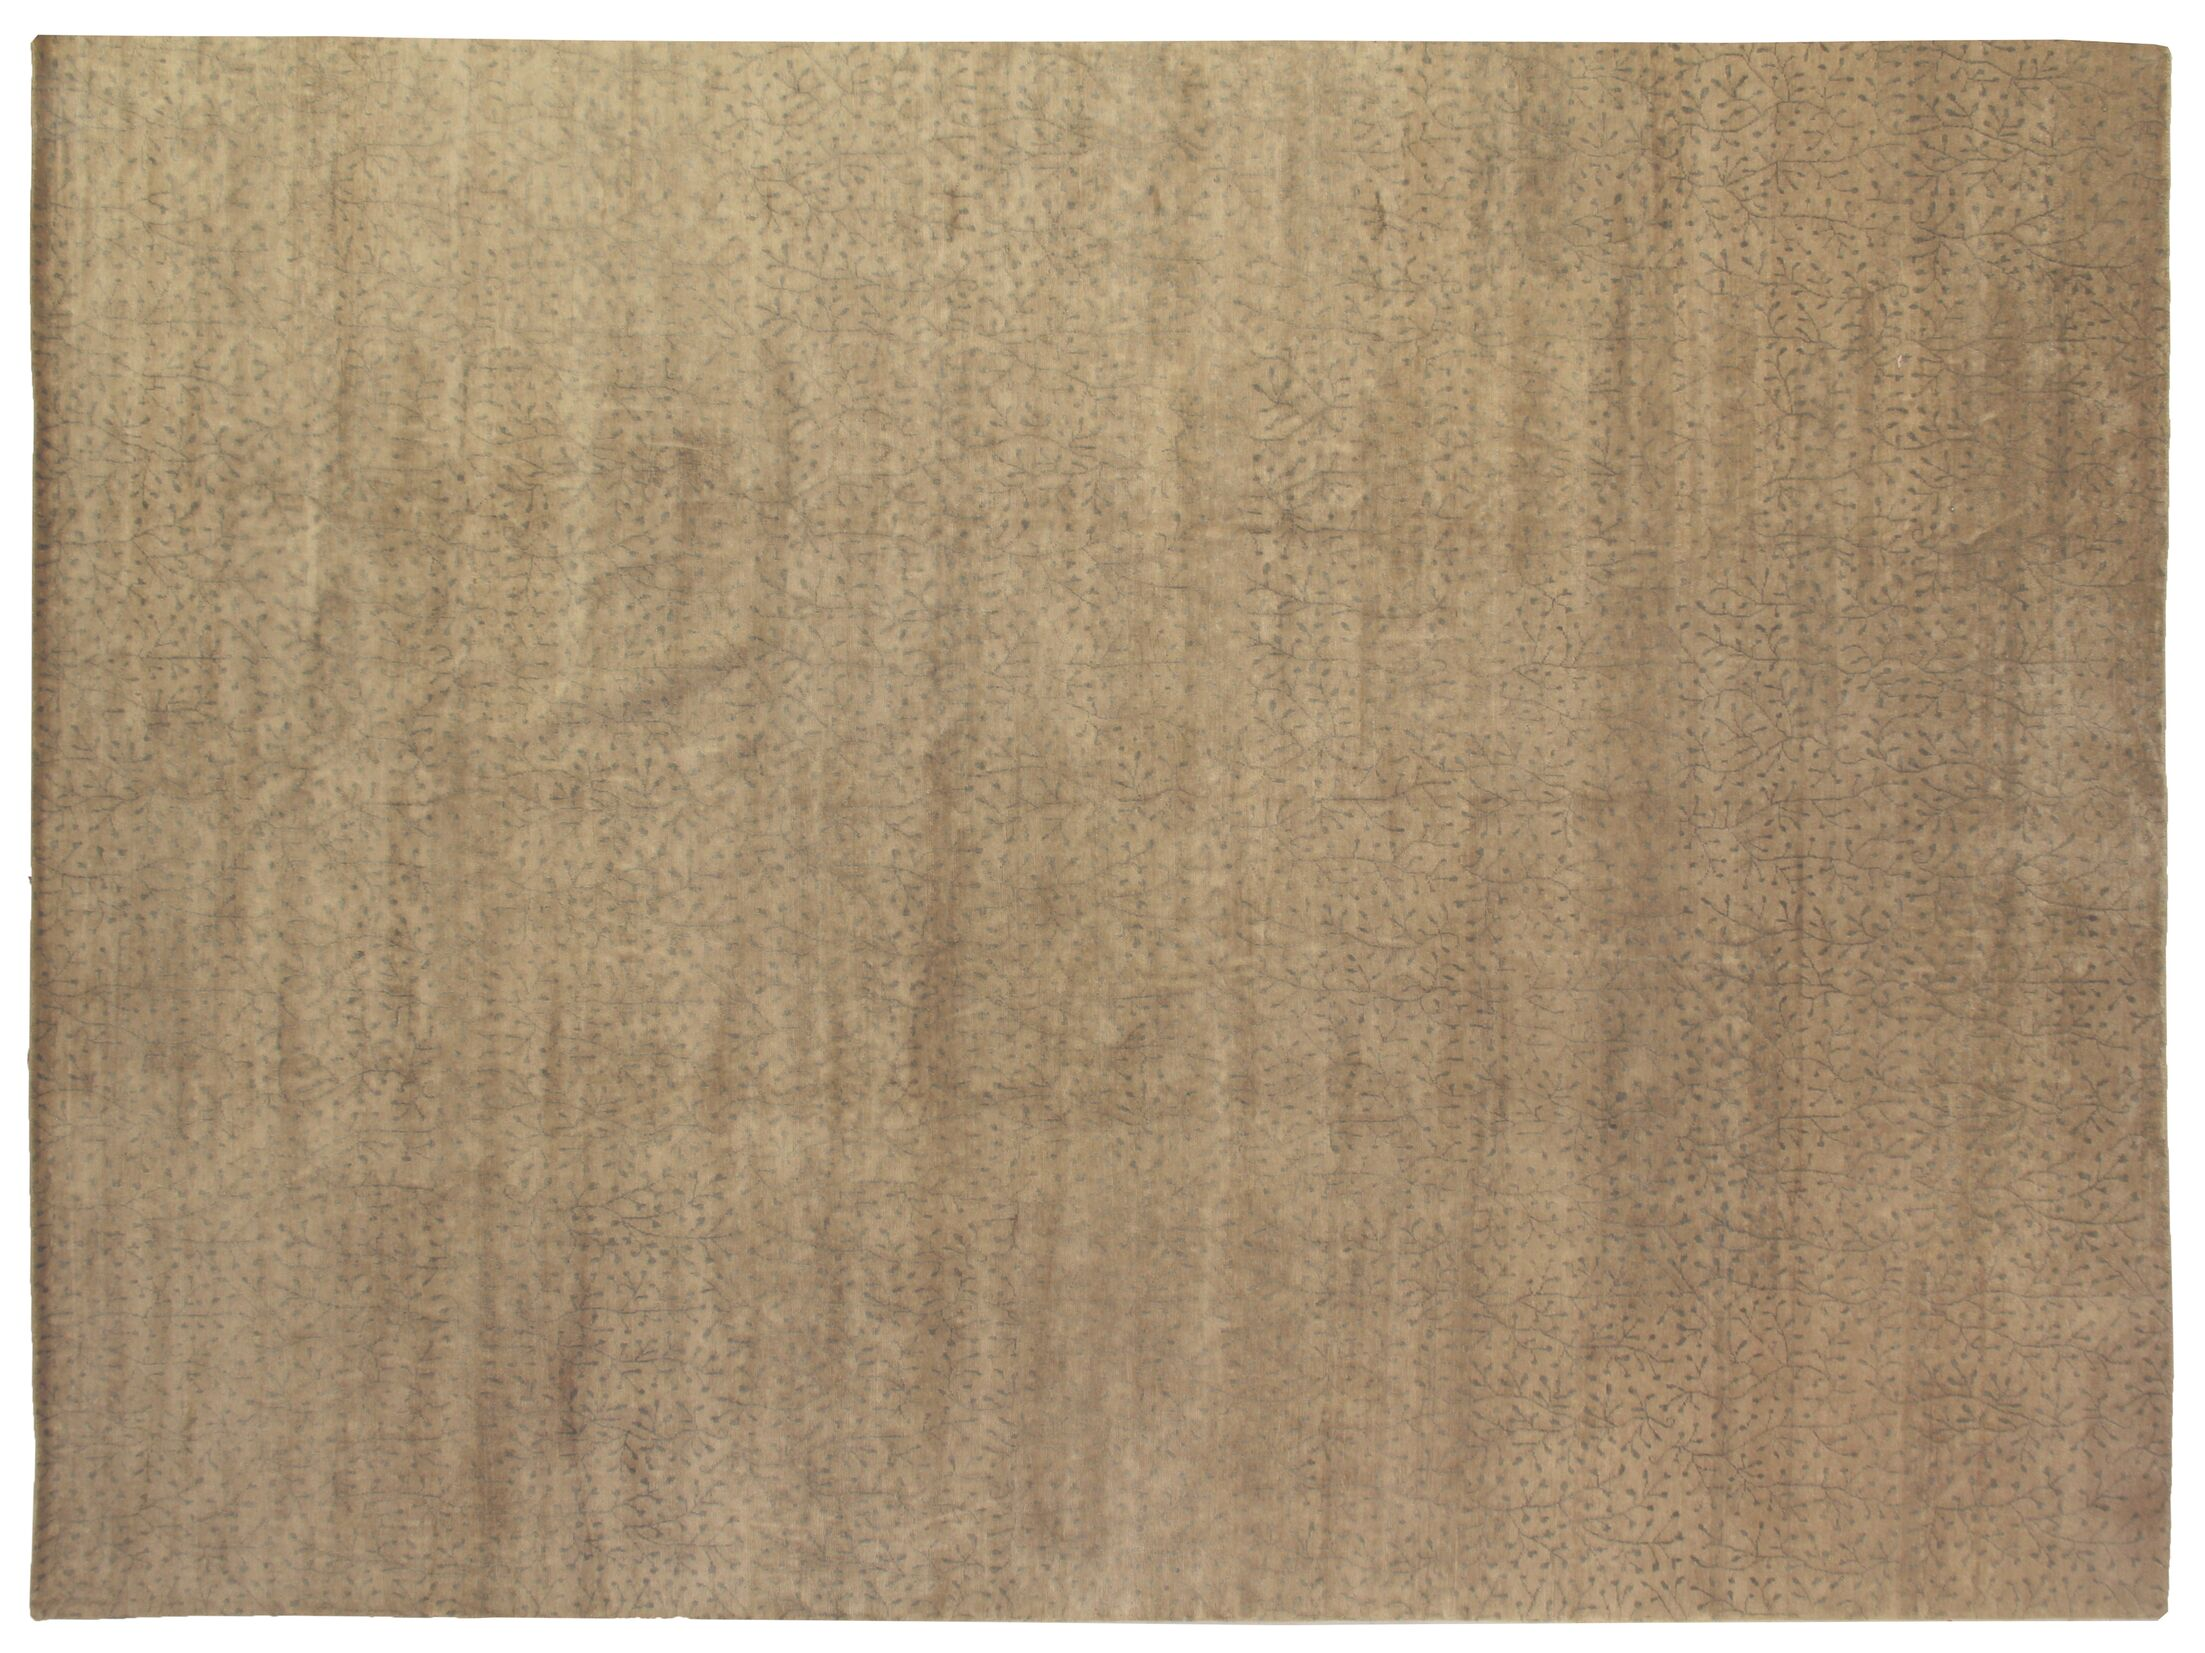 Metropolitan Hand Knotted Wool Ivory/Green Area Rug Rug Size: Rectangle 3' x 5'